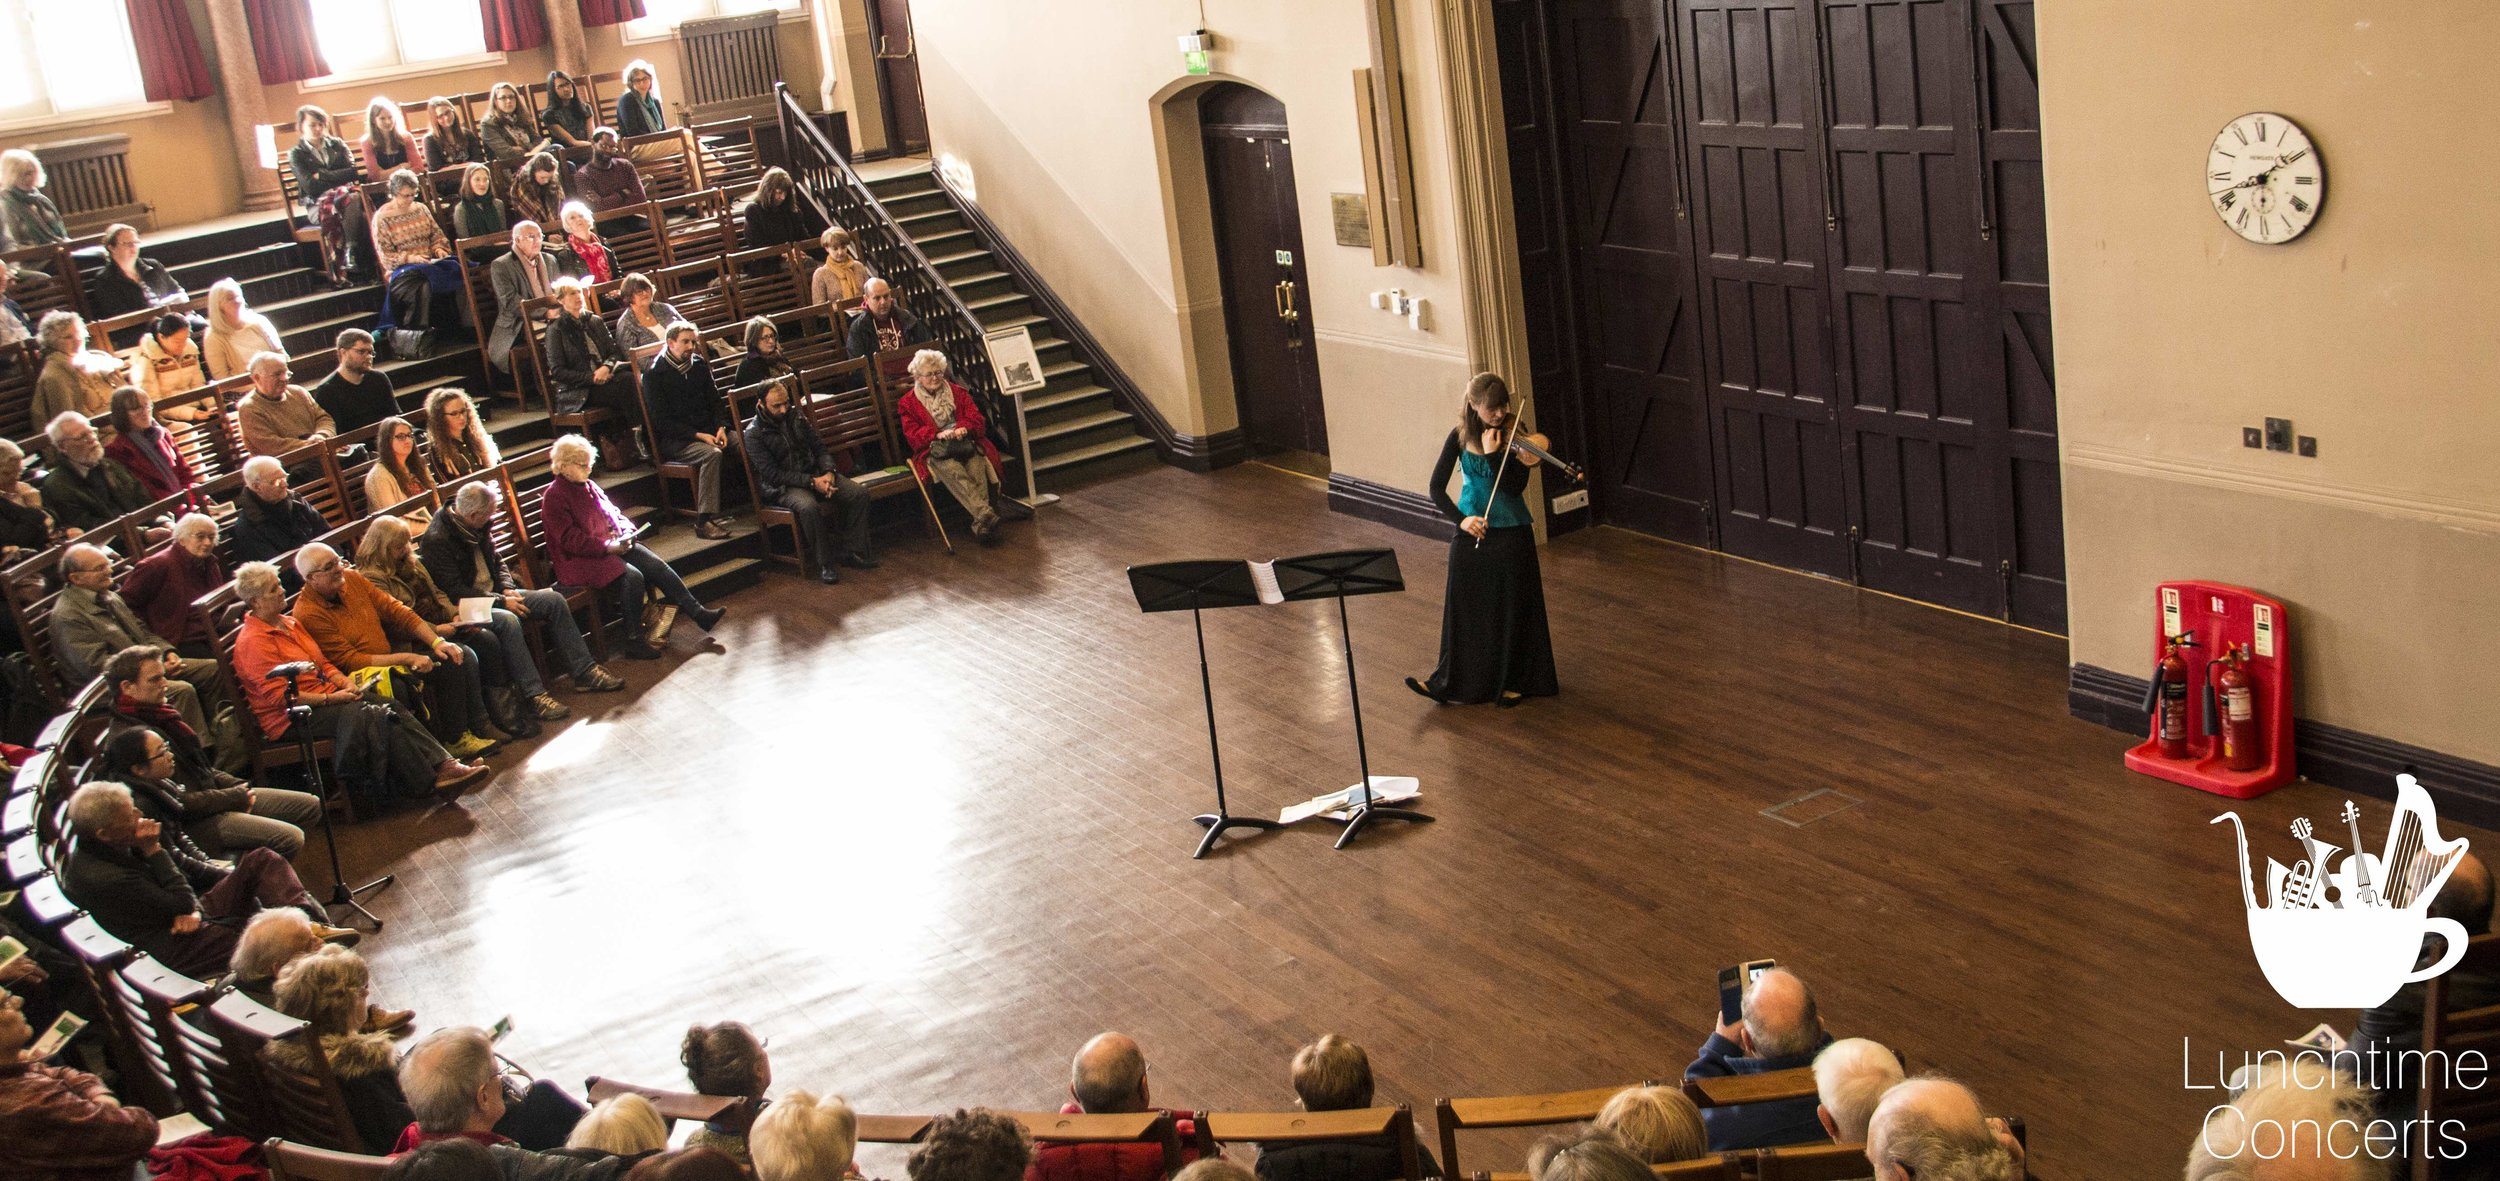 Fenella Humphreys performs in the Leggate Theatre at the University of Liverpool